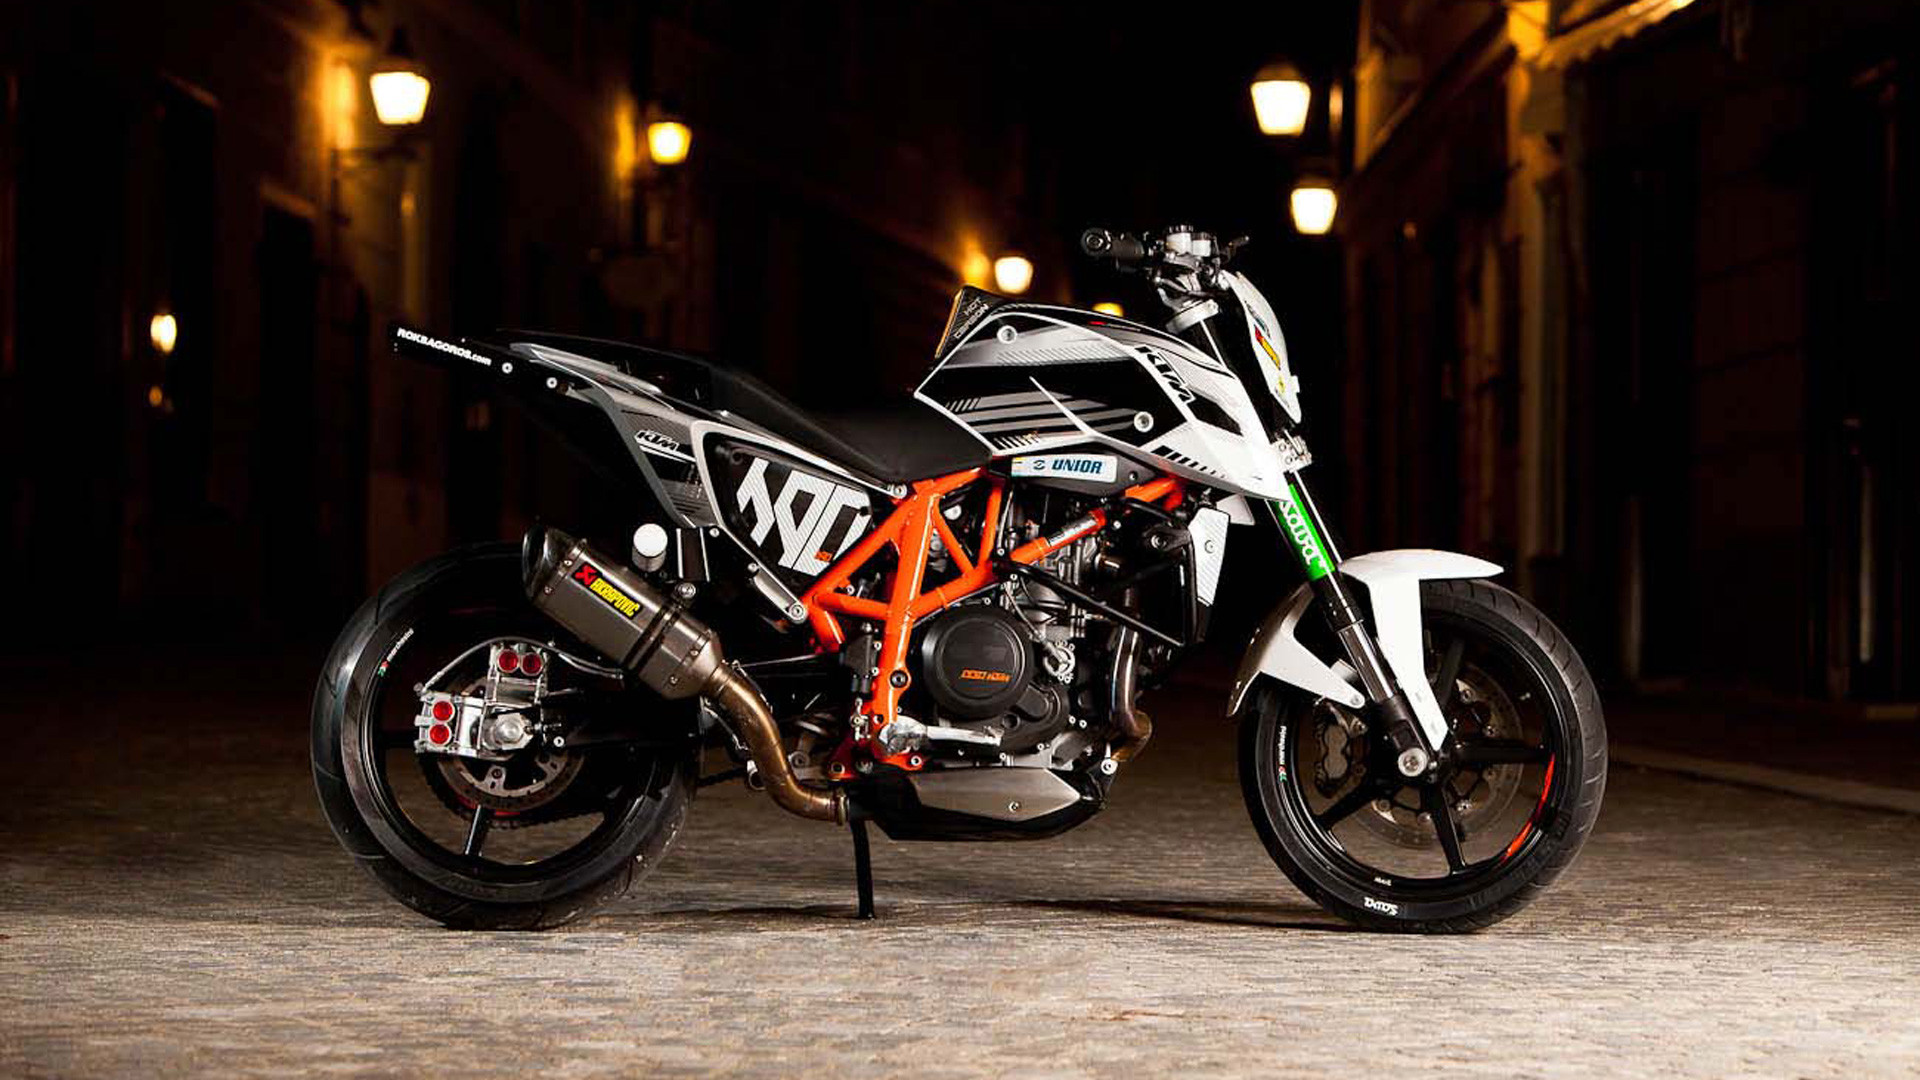 Ktm Bikes Wallpapers Wallpapertag